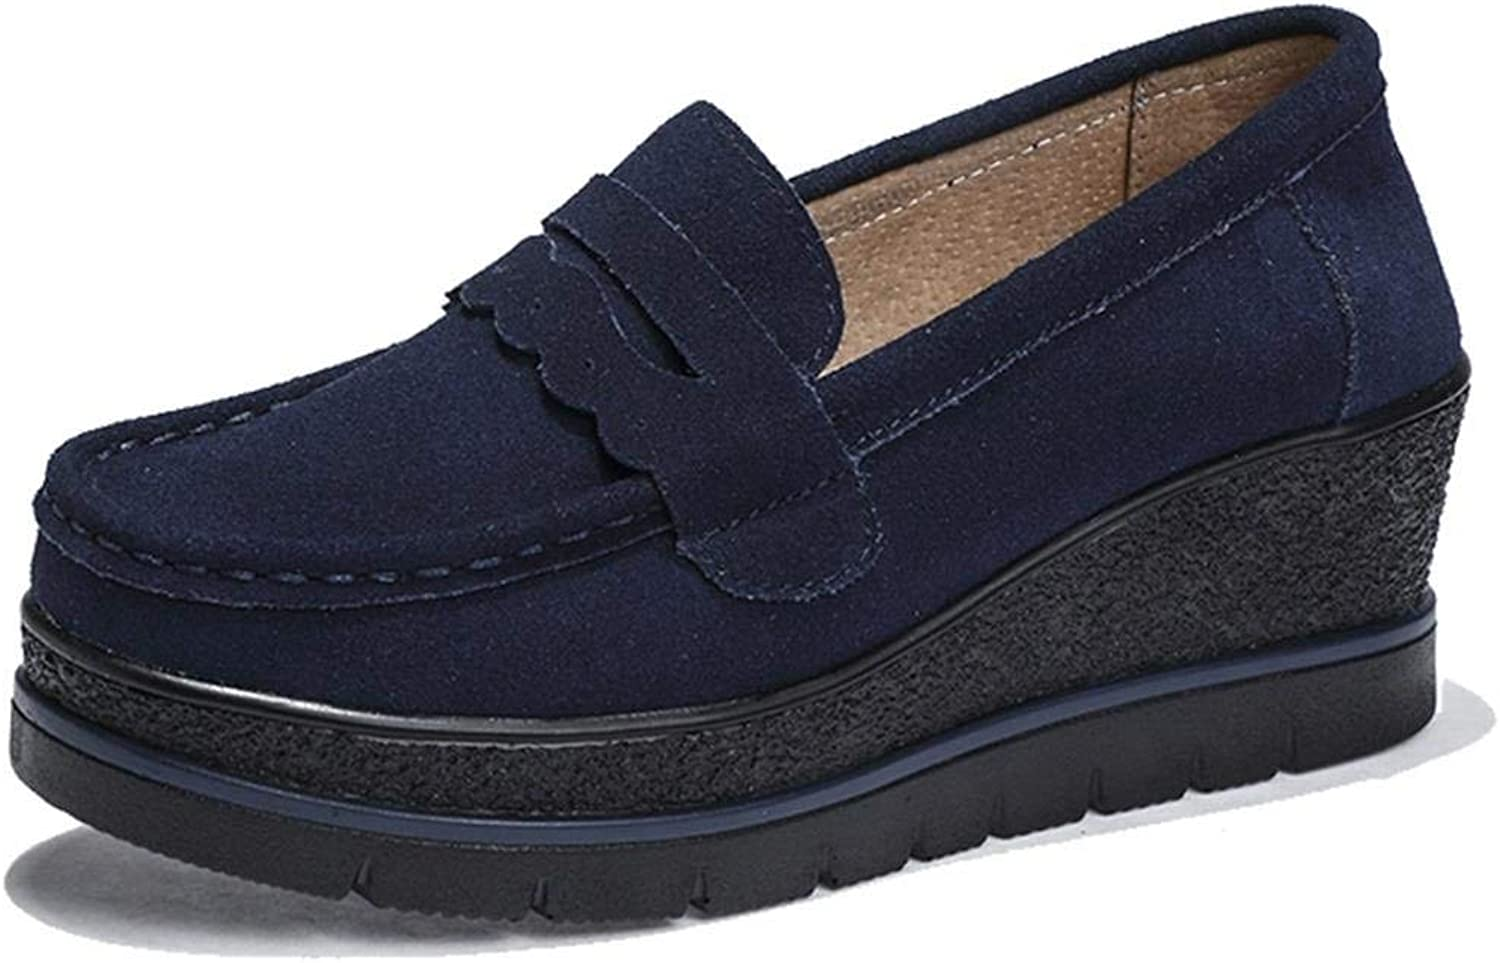 Jc-factory Women's Suede Leather Slip-on Comfort Wedge Platform Penny Loafers Moccasins